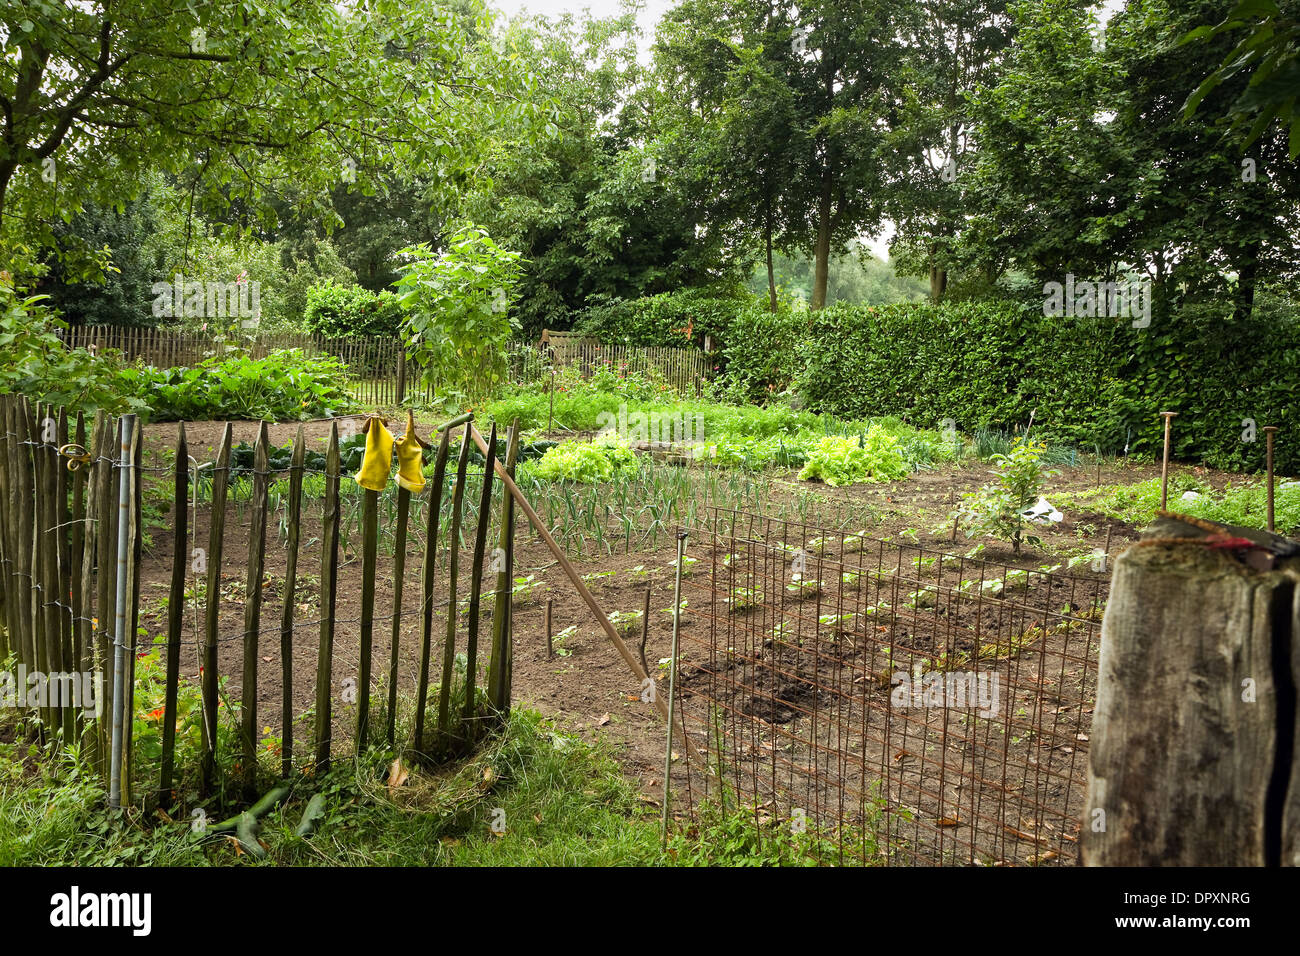 Vegetable garden with fence next to a farm in the country in summer - Stock Image